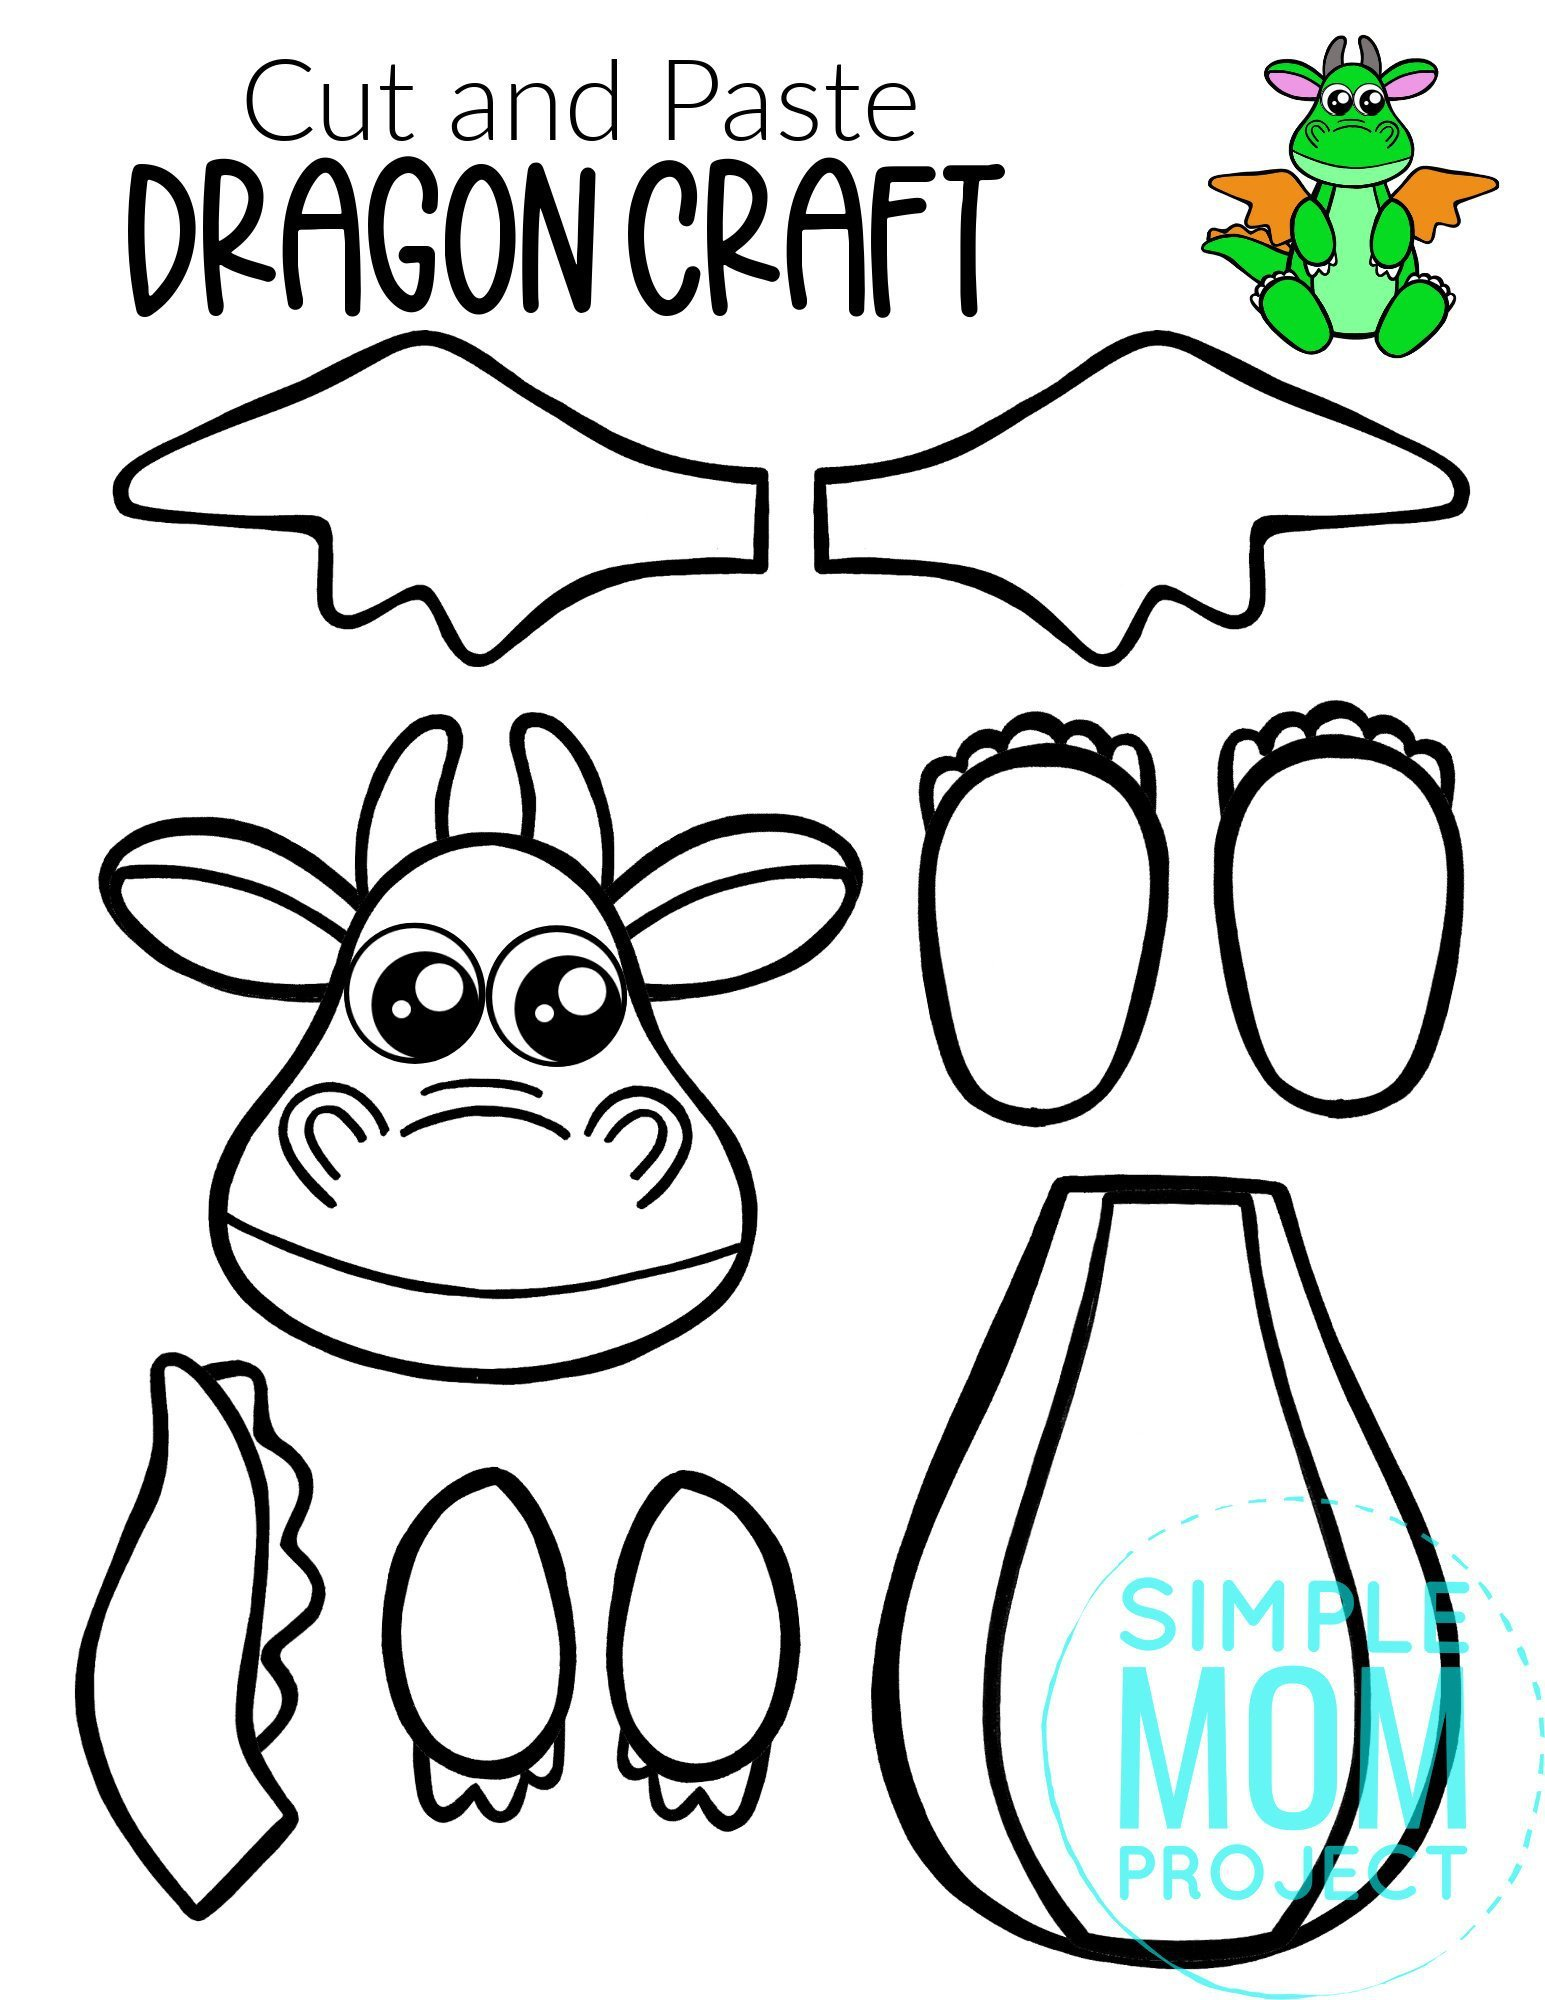 Free Printable Cut and Paste Dragon Craft Template Craft for kids, preschoolers and toddlers